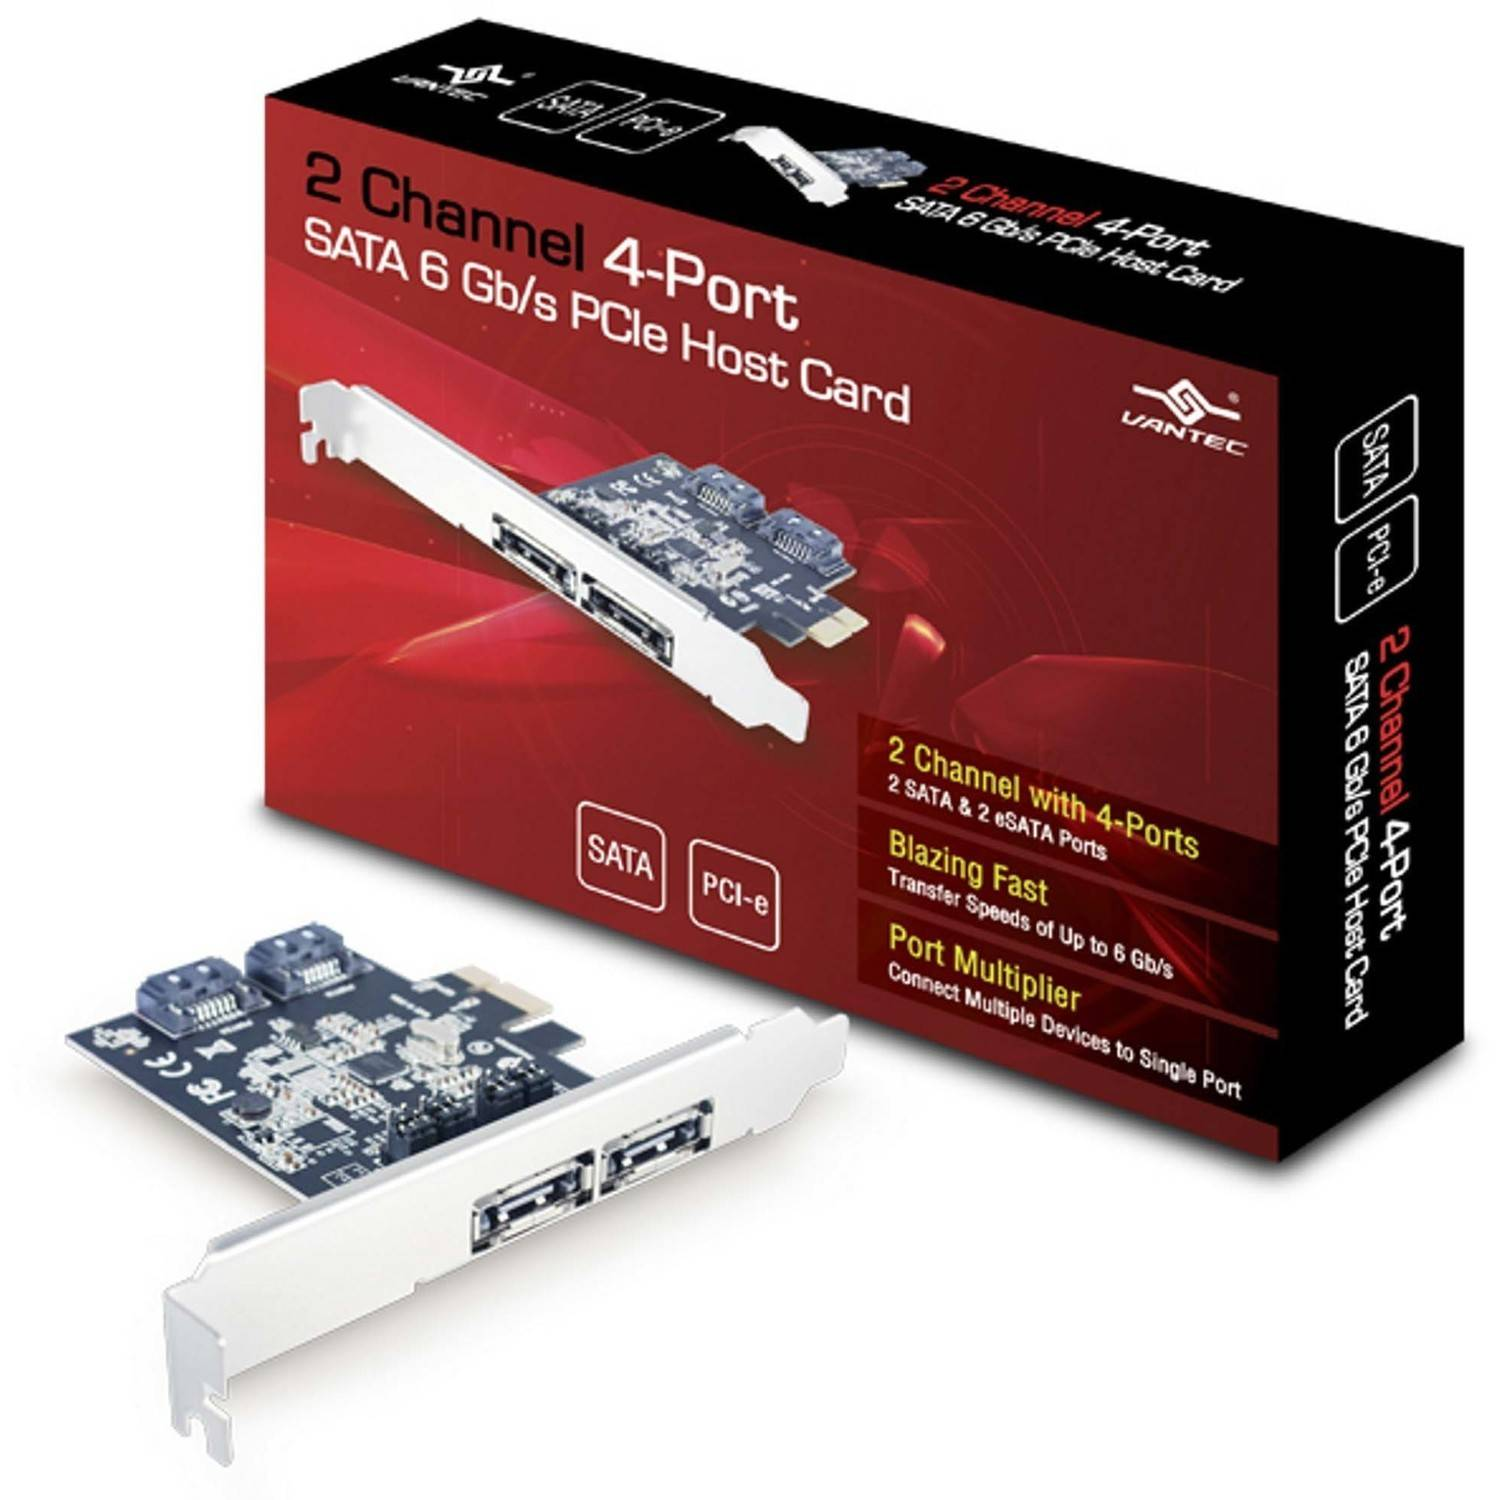 Vantec UGT-ST622 2-Channel 4-Port SATA 6GBps PCIe Host Card, Silver